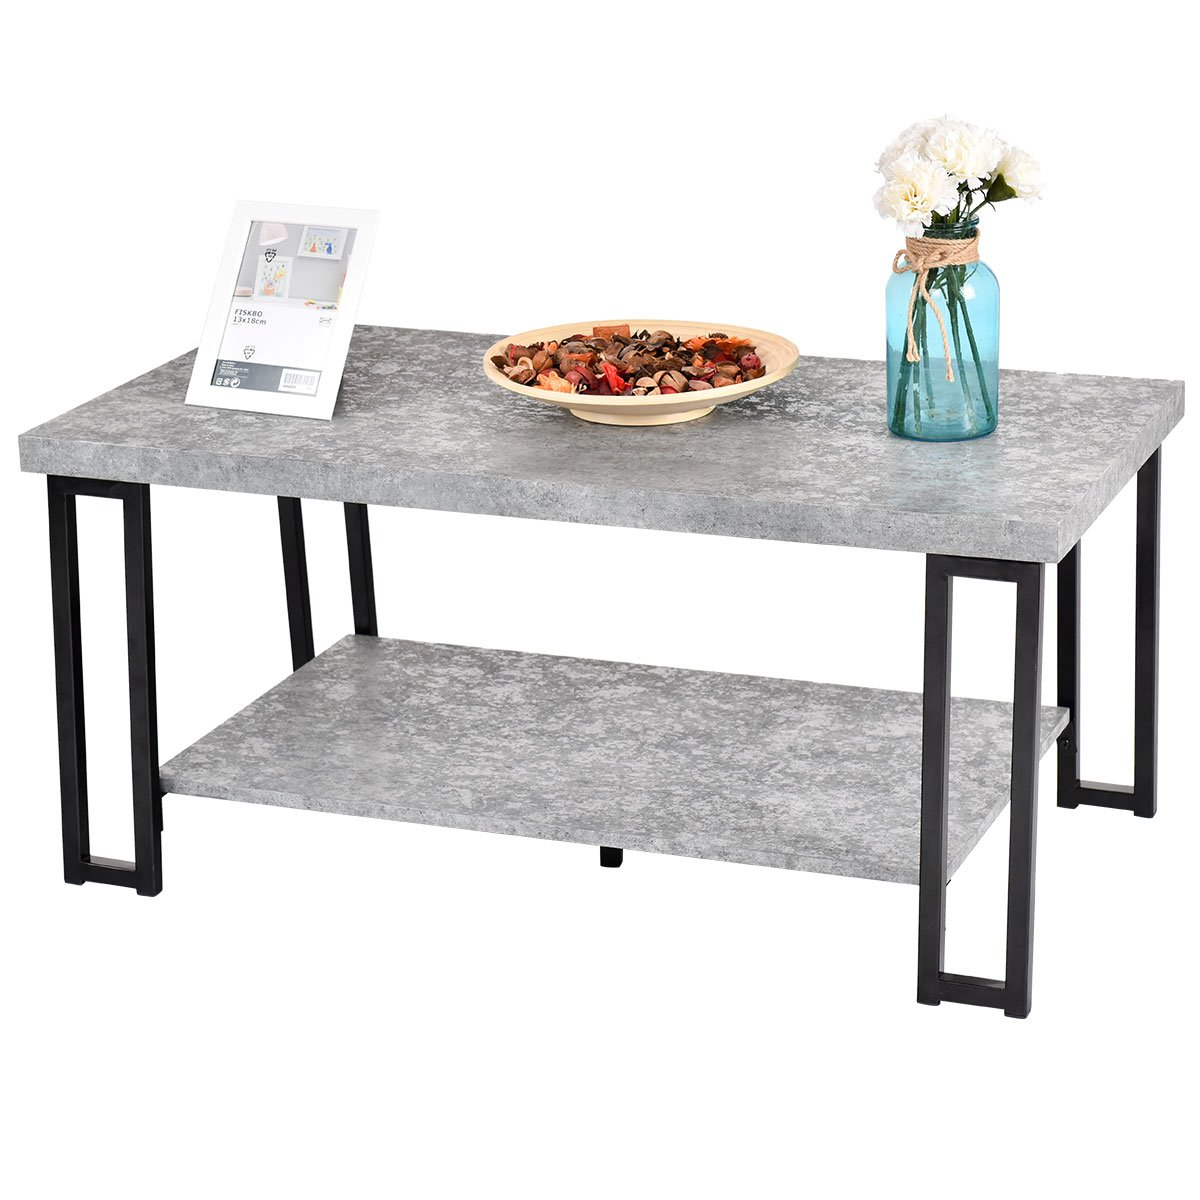 Giantex Accent Modern Coffee Tea Table Living Room Tables Faux Marble Top Metal Frame Cocktail Table (39.5''L x20''W x18''H w/Storage Shelf, Cement Color)